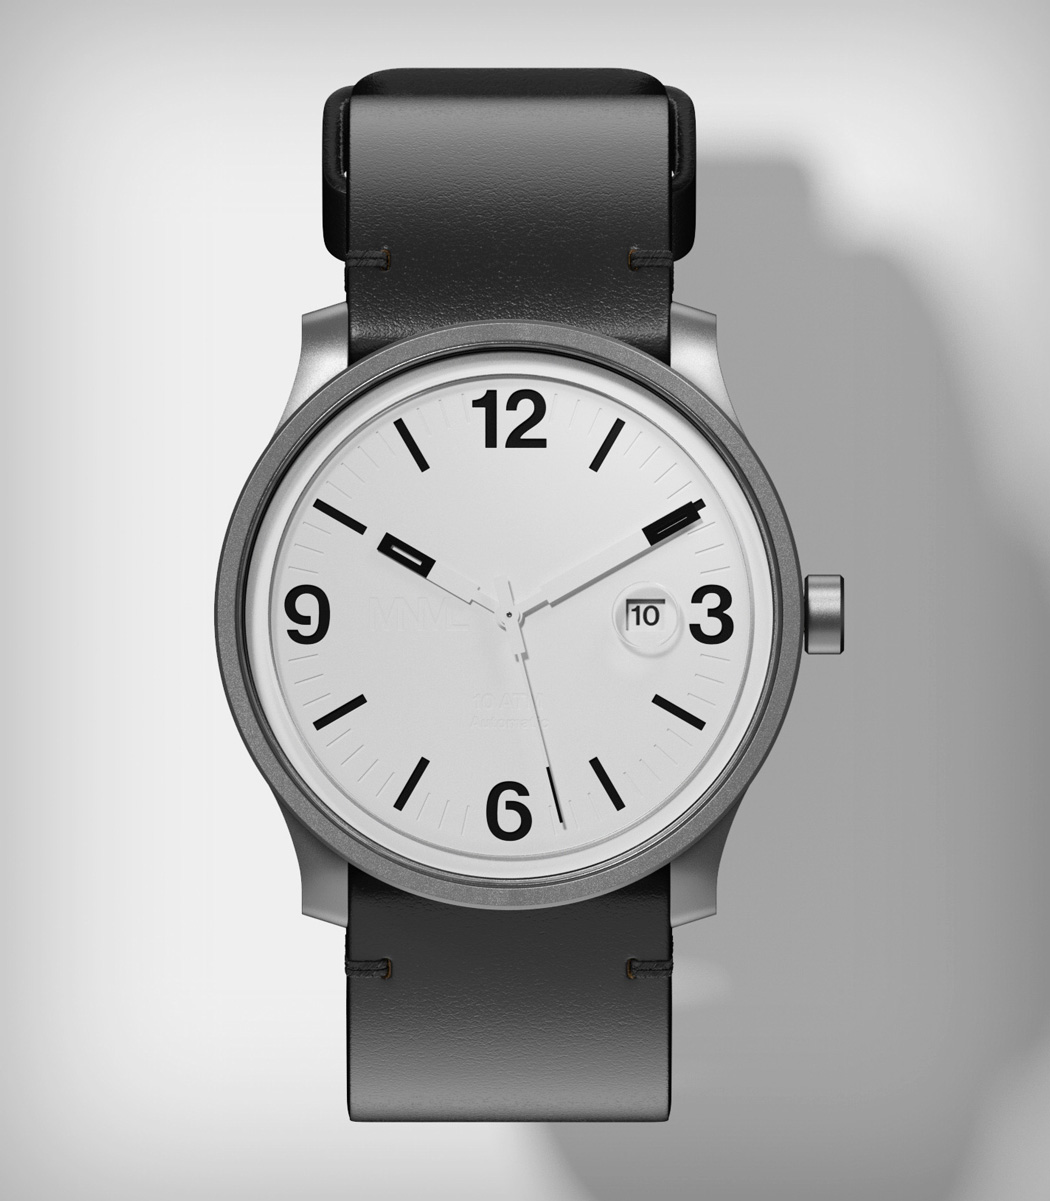 mnml_x_series_watch_09